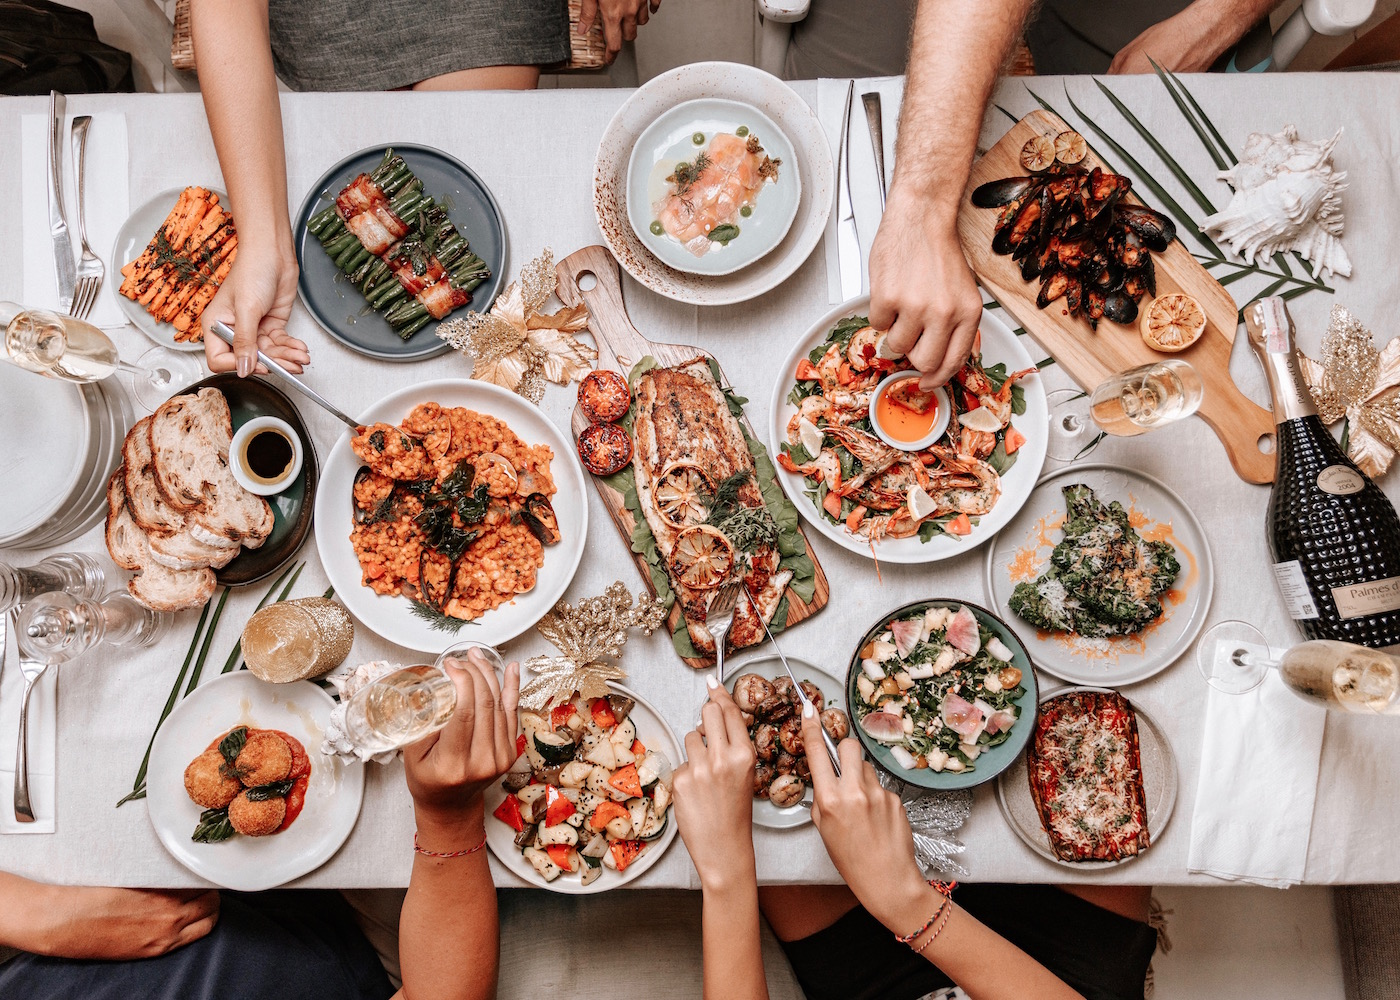 Feast of the Seven Fishes at Hippie Fish